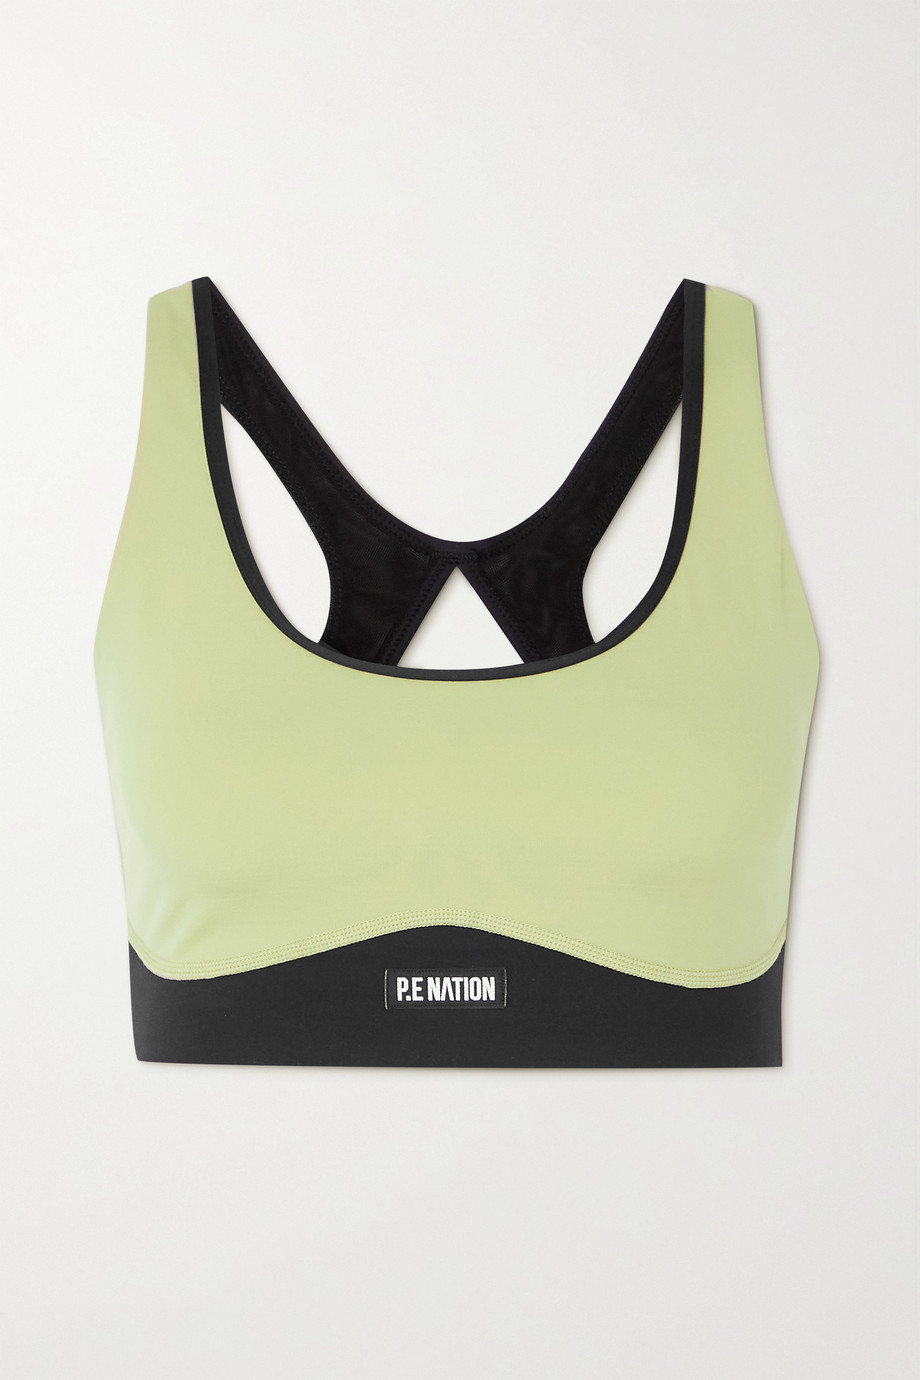 P.E NATION Double Team recycled stretch and mesh sports bra